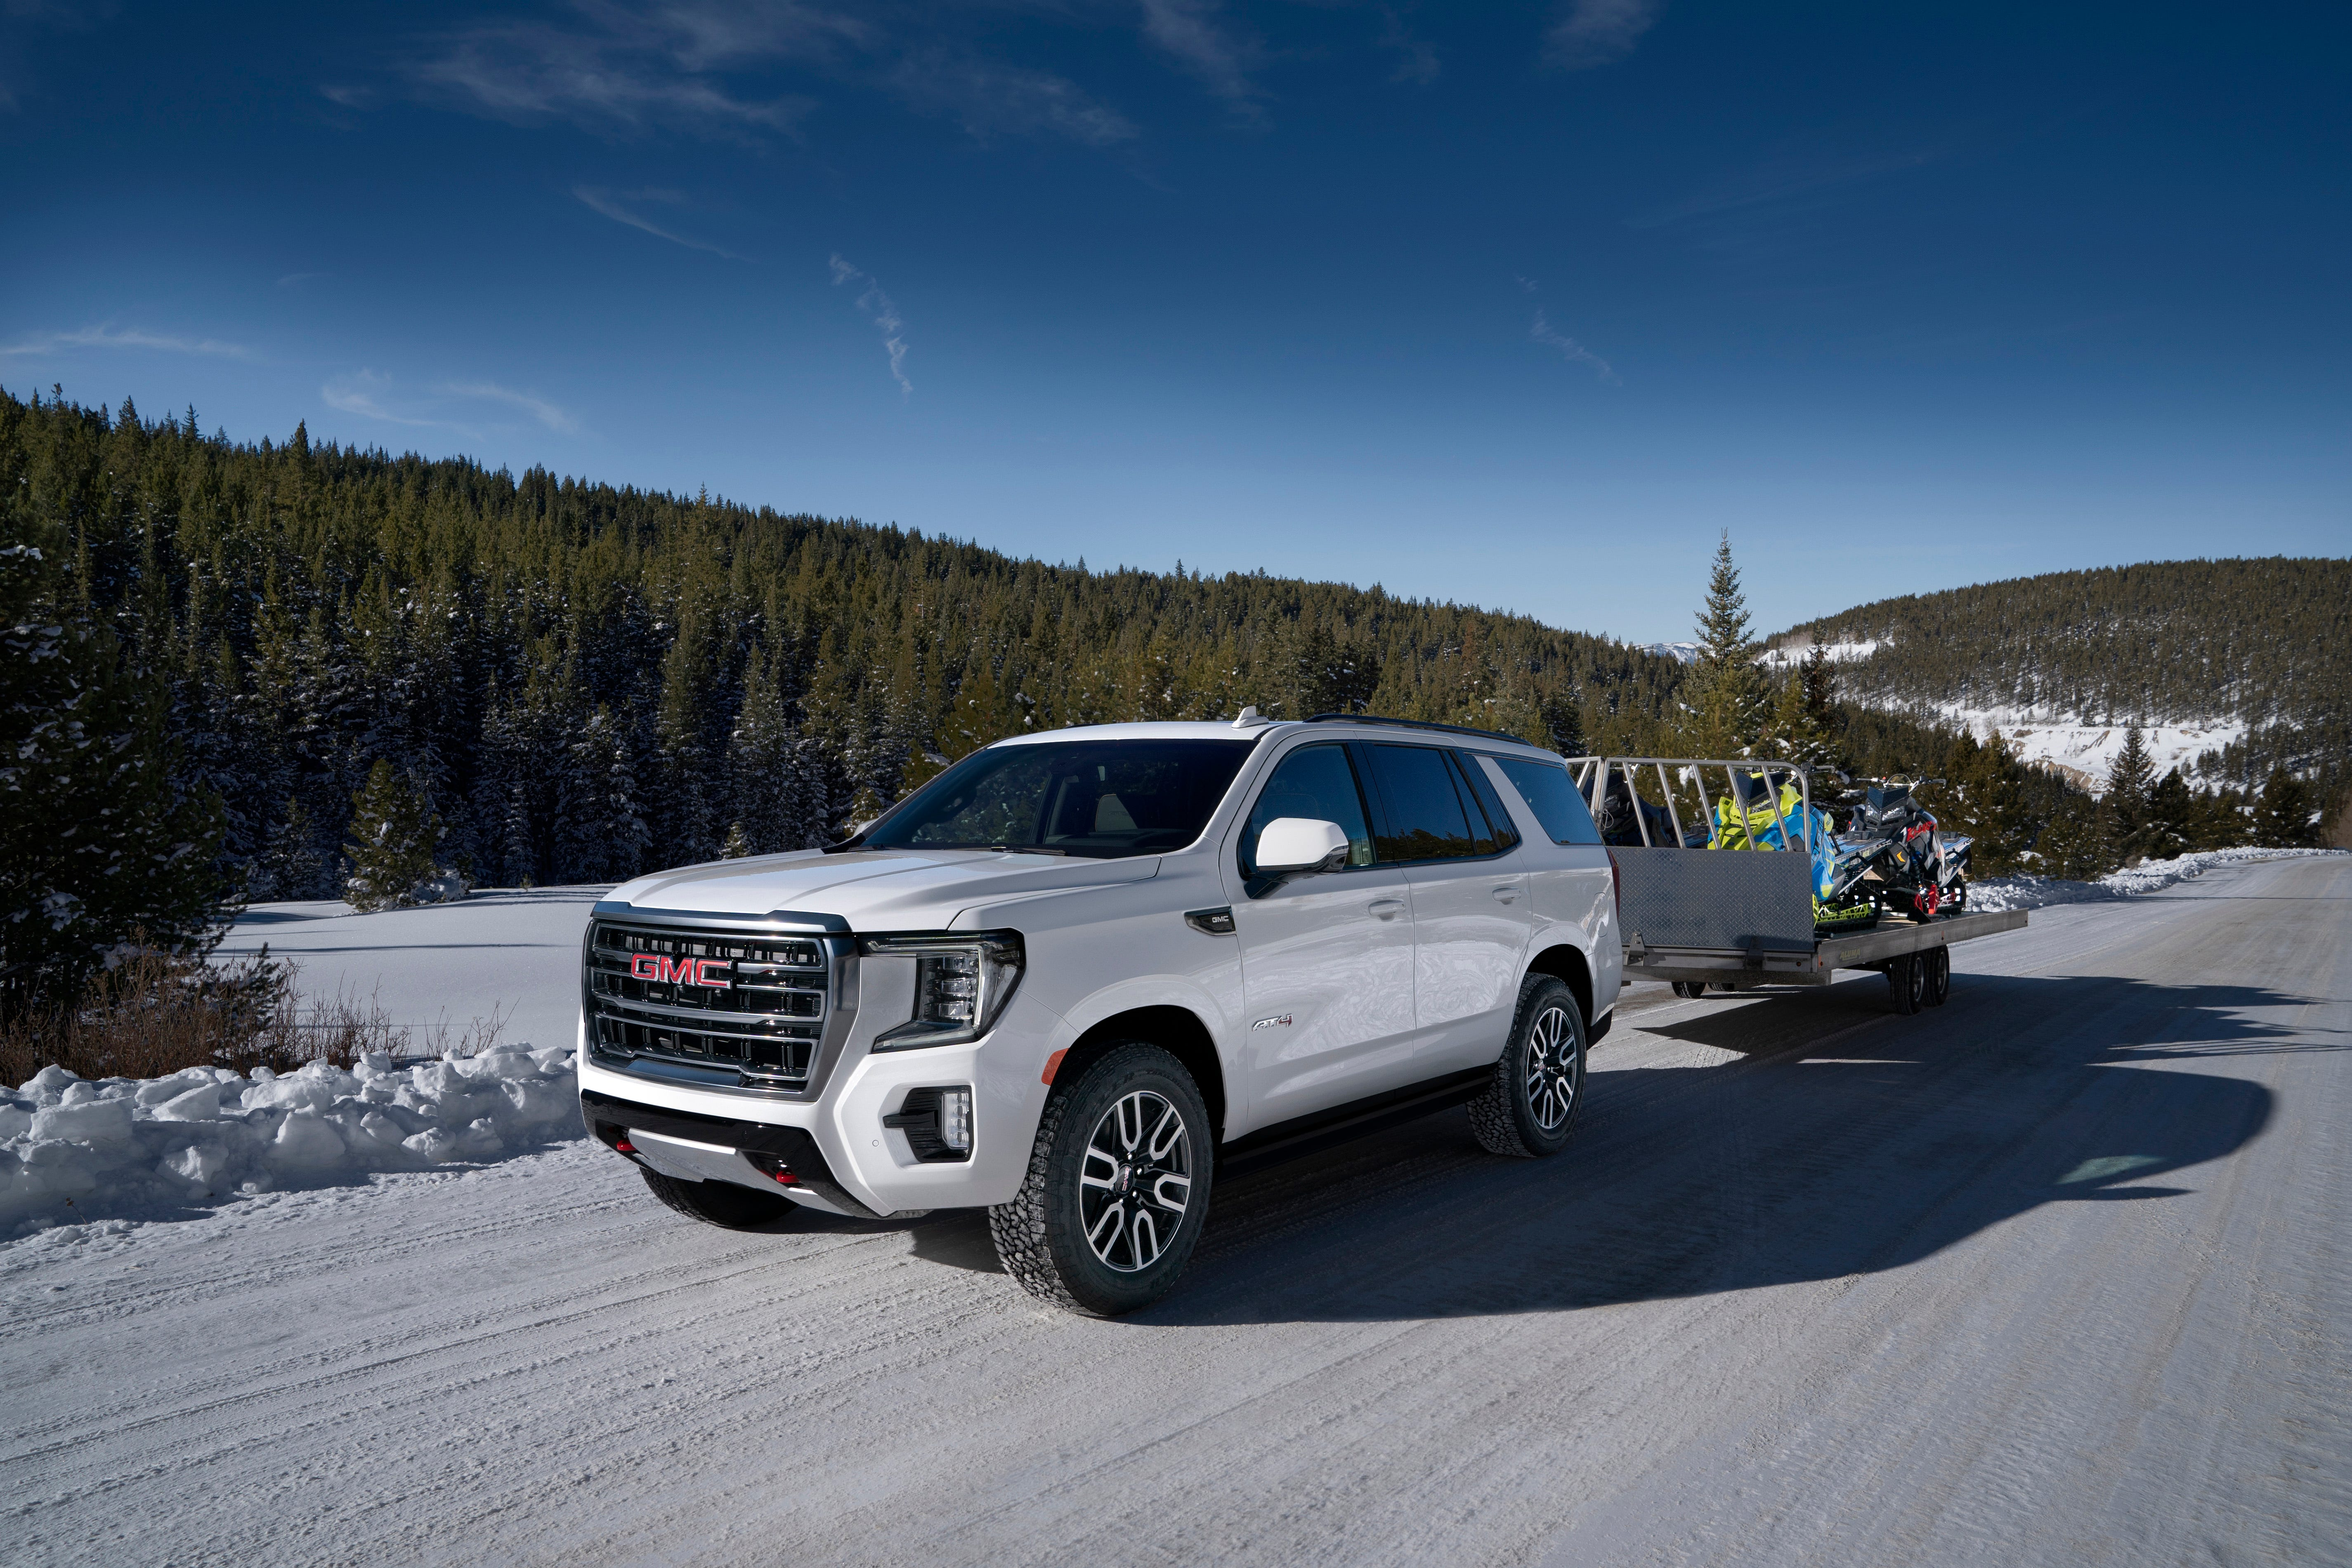 New 2021 Gmc Yukon Loaded With Features For Comfort Capability